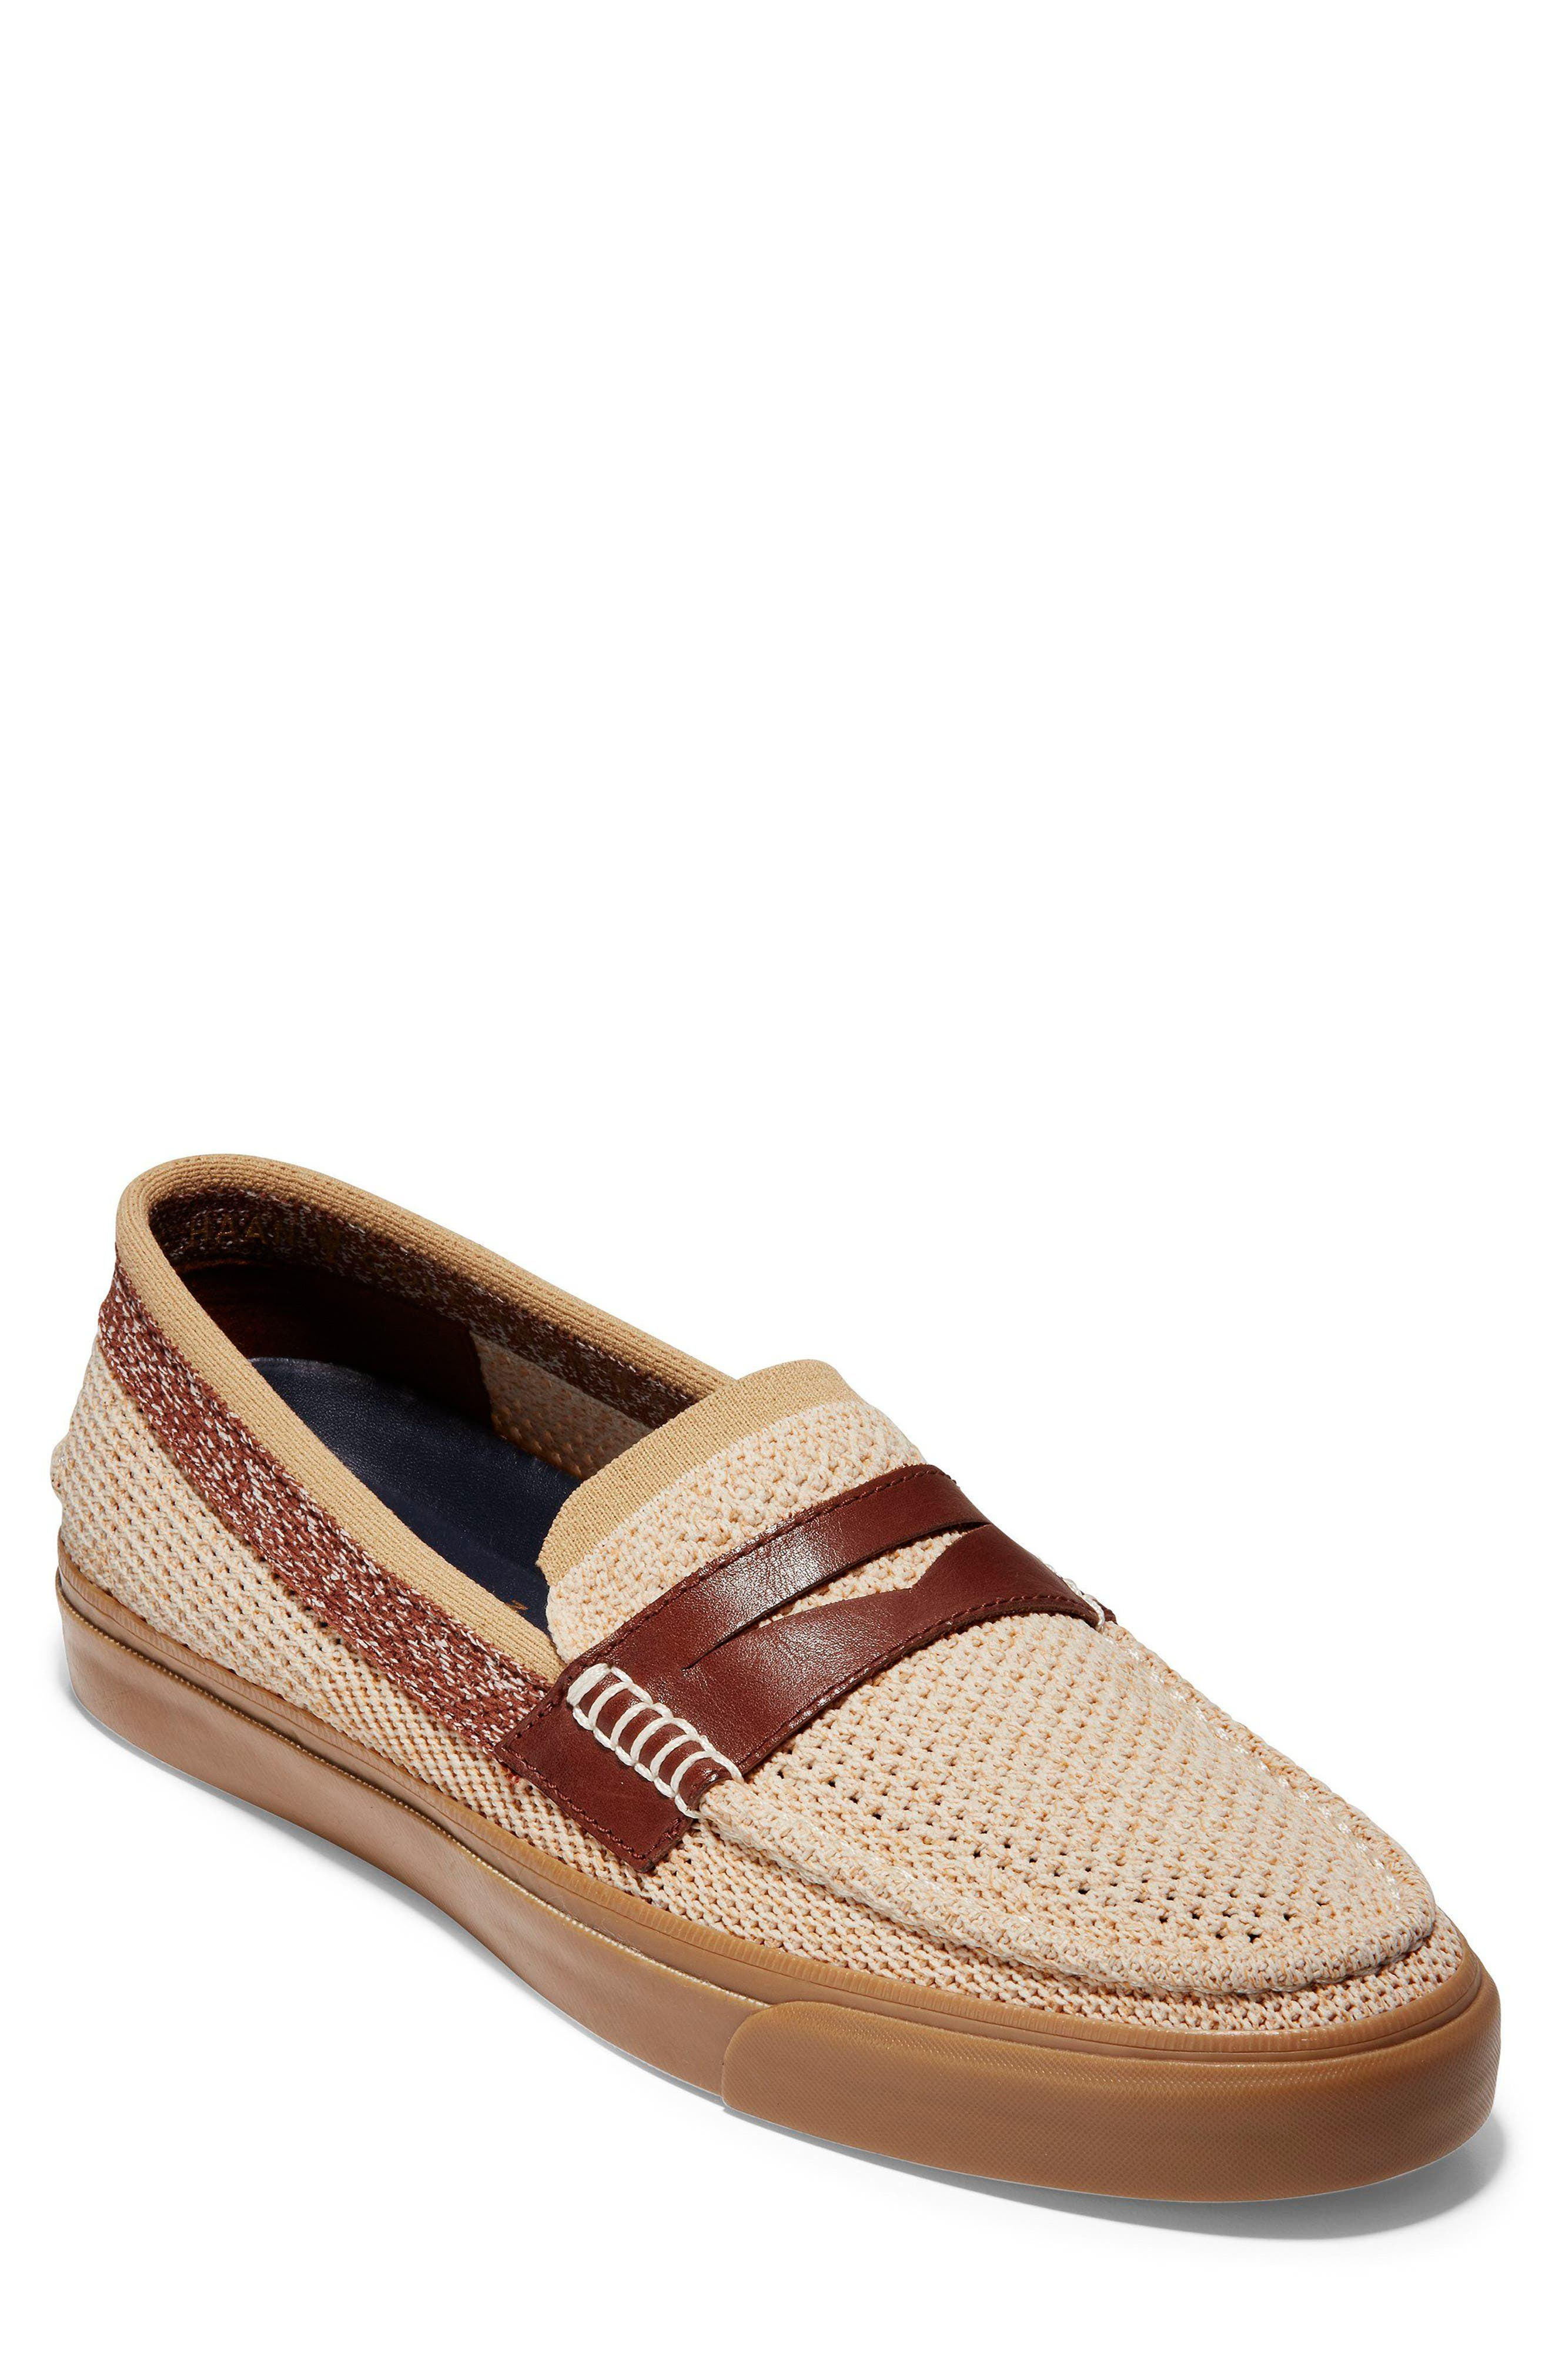 Pinch Weekend Stitch Penny Loafer,                             Main thumbnail 1, color,                             Iced Coffee/ Sand/ Woodbury